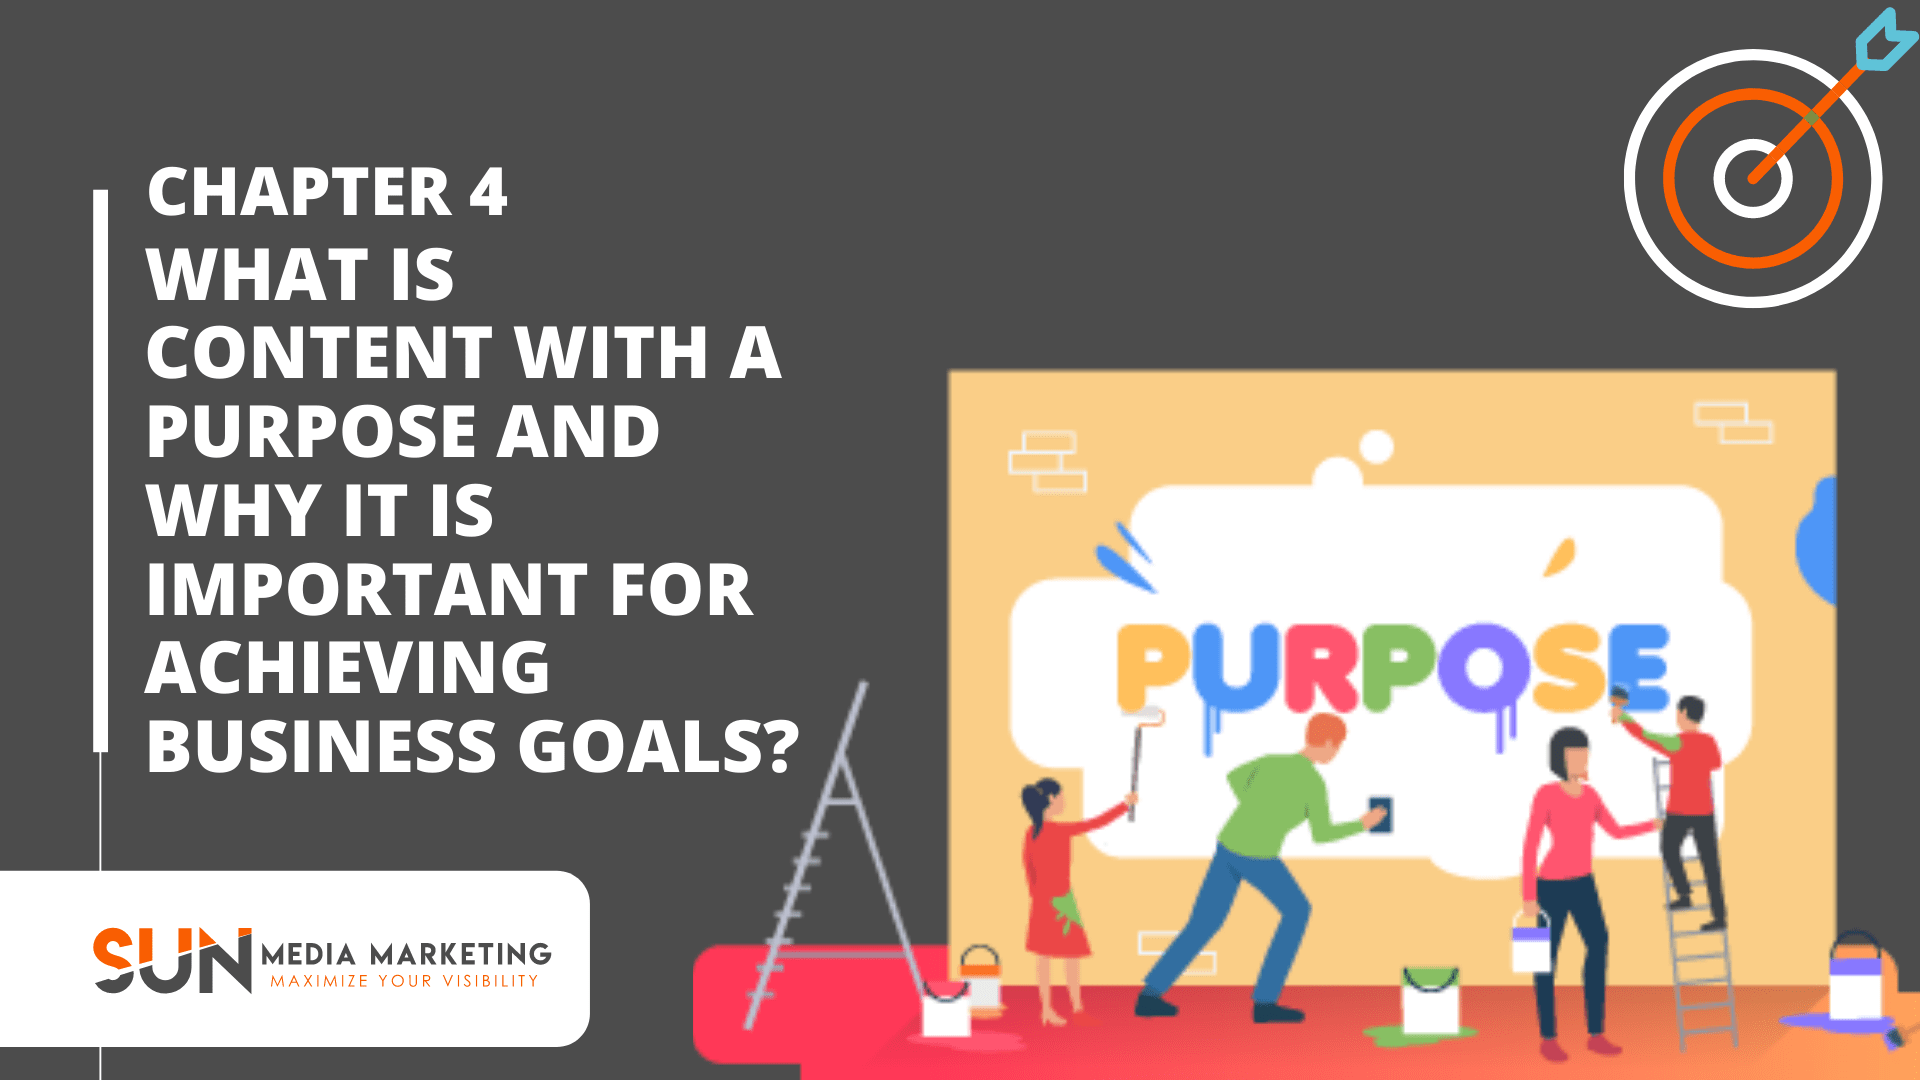 What is content with a purpose and why it is important for achieving business goals